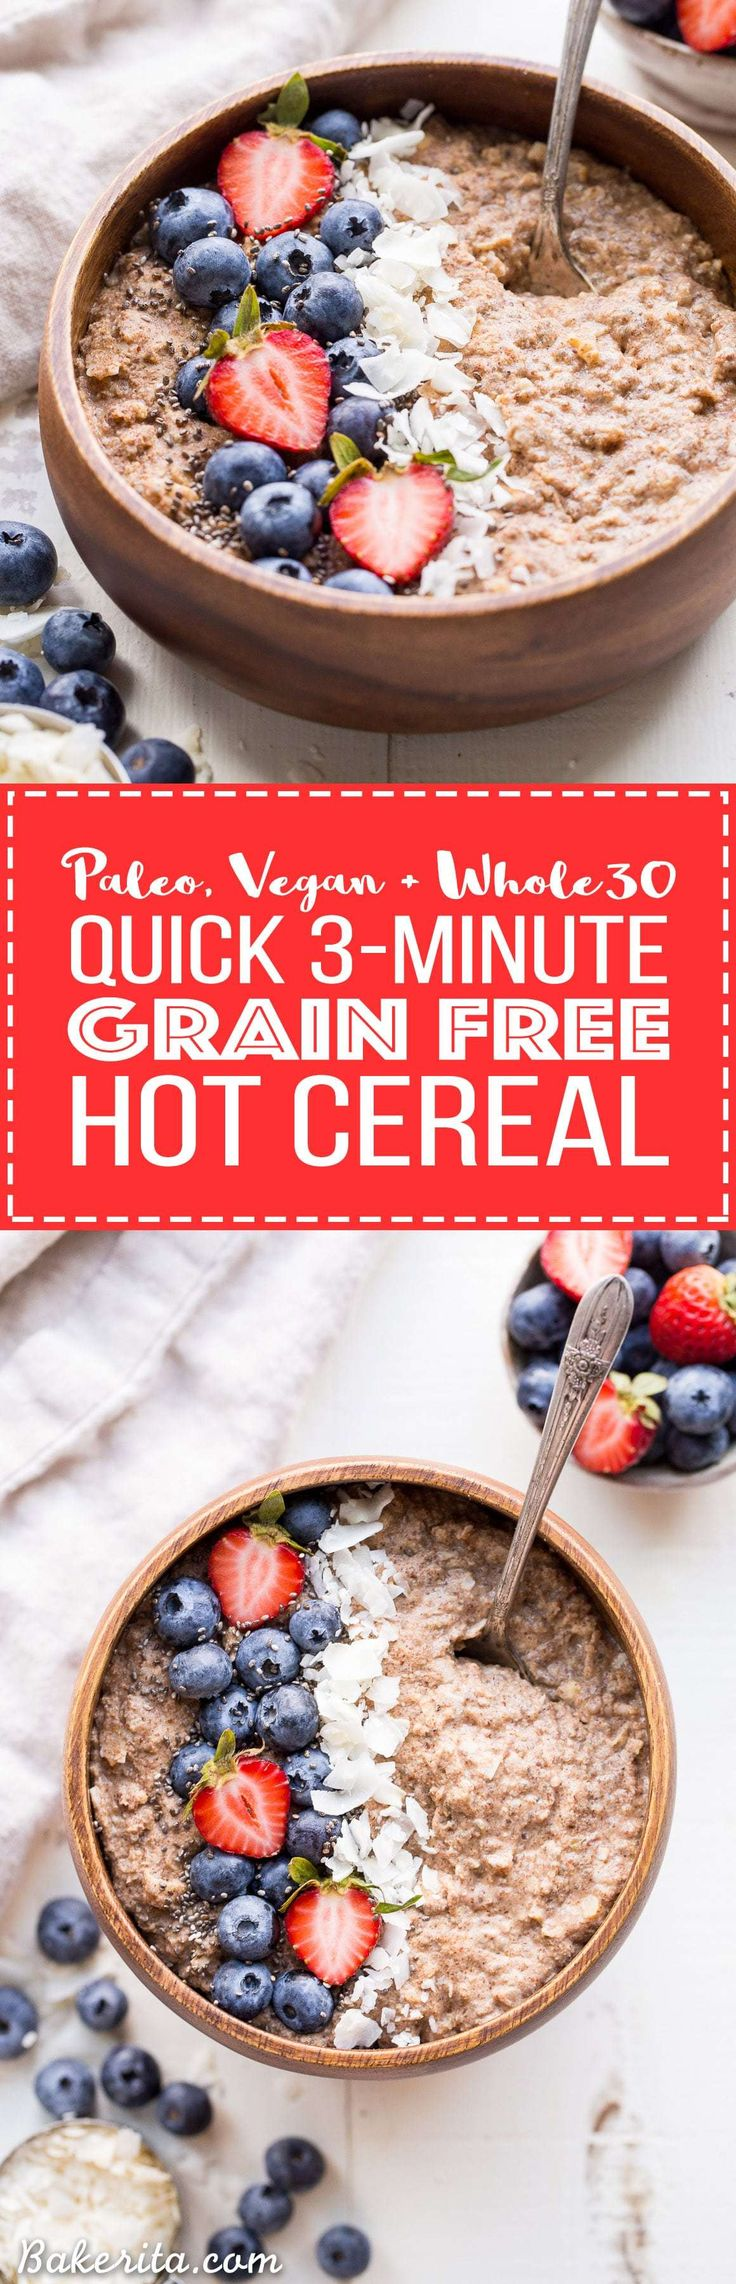 Not eating grains but missing your morning oatmeal? Look no further than this Quick Grain-Free Hot Cereal! This super easy porridge is made in just 3 minutes and it's gluten-free, paleo, vegan, and Whole30-friendly. This is a staple Whole30 breakfast!